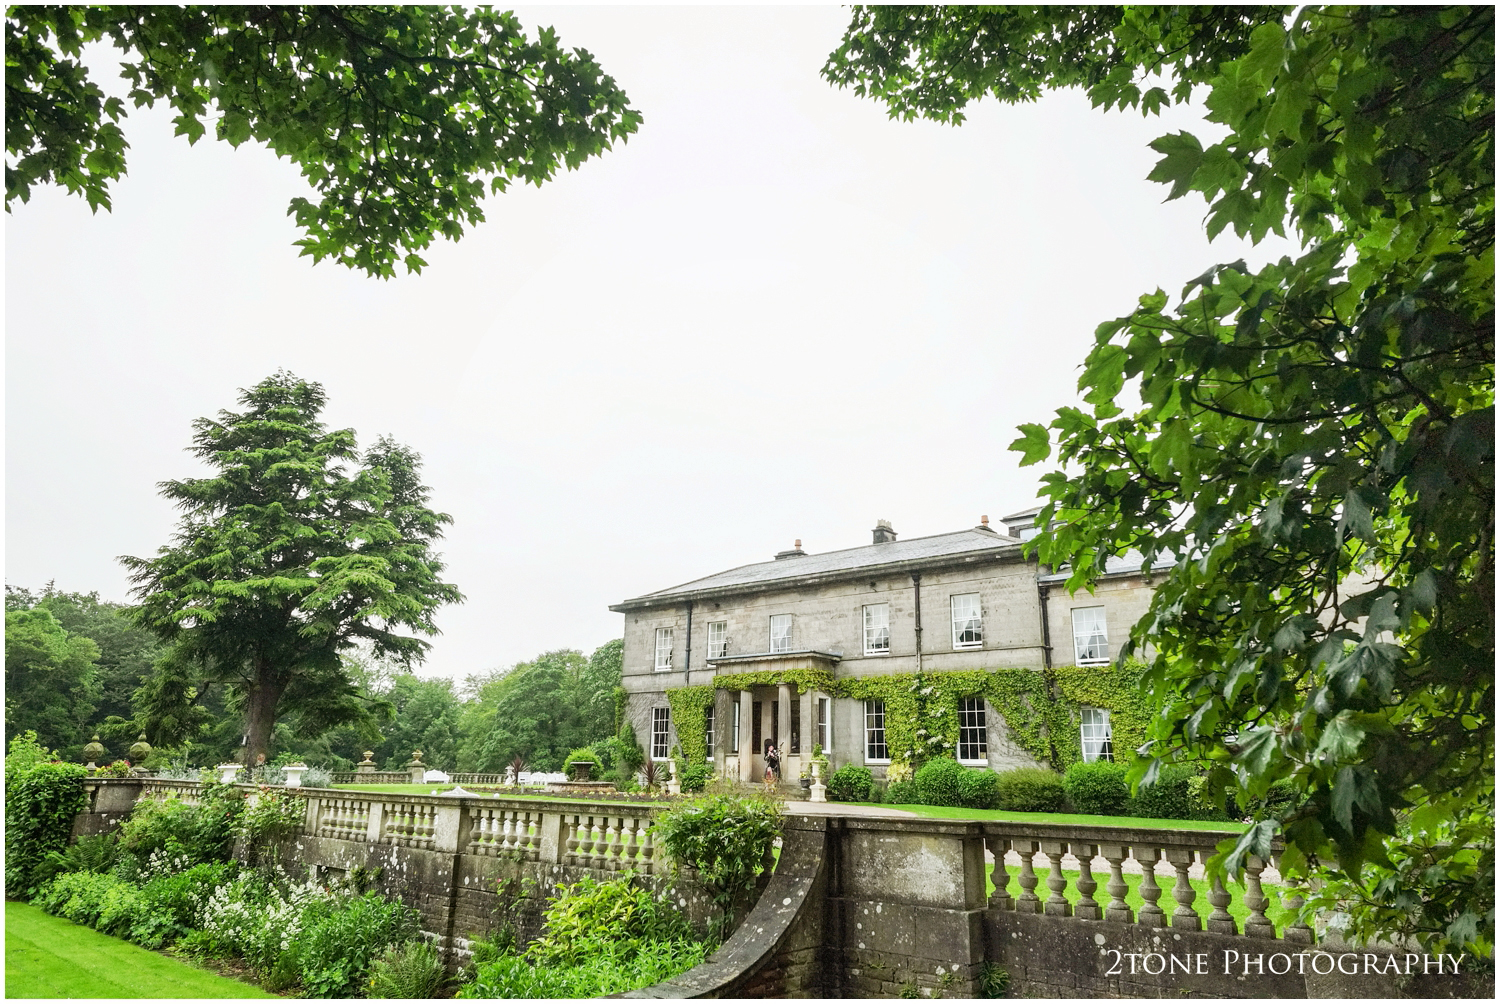 Doxford Hall on their early June wedding day, stunning and full of colour.